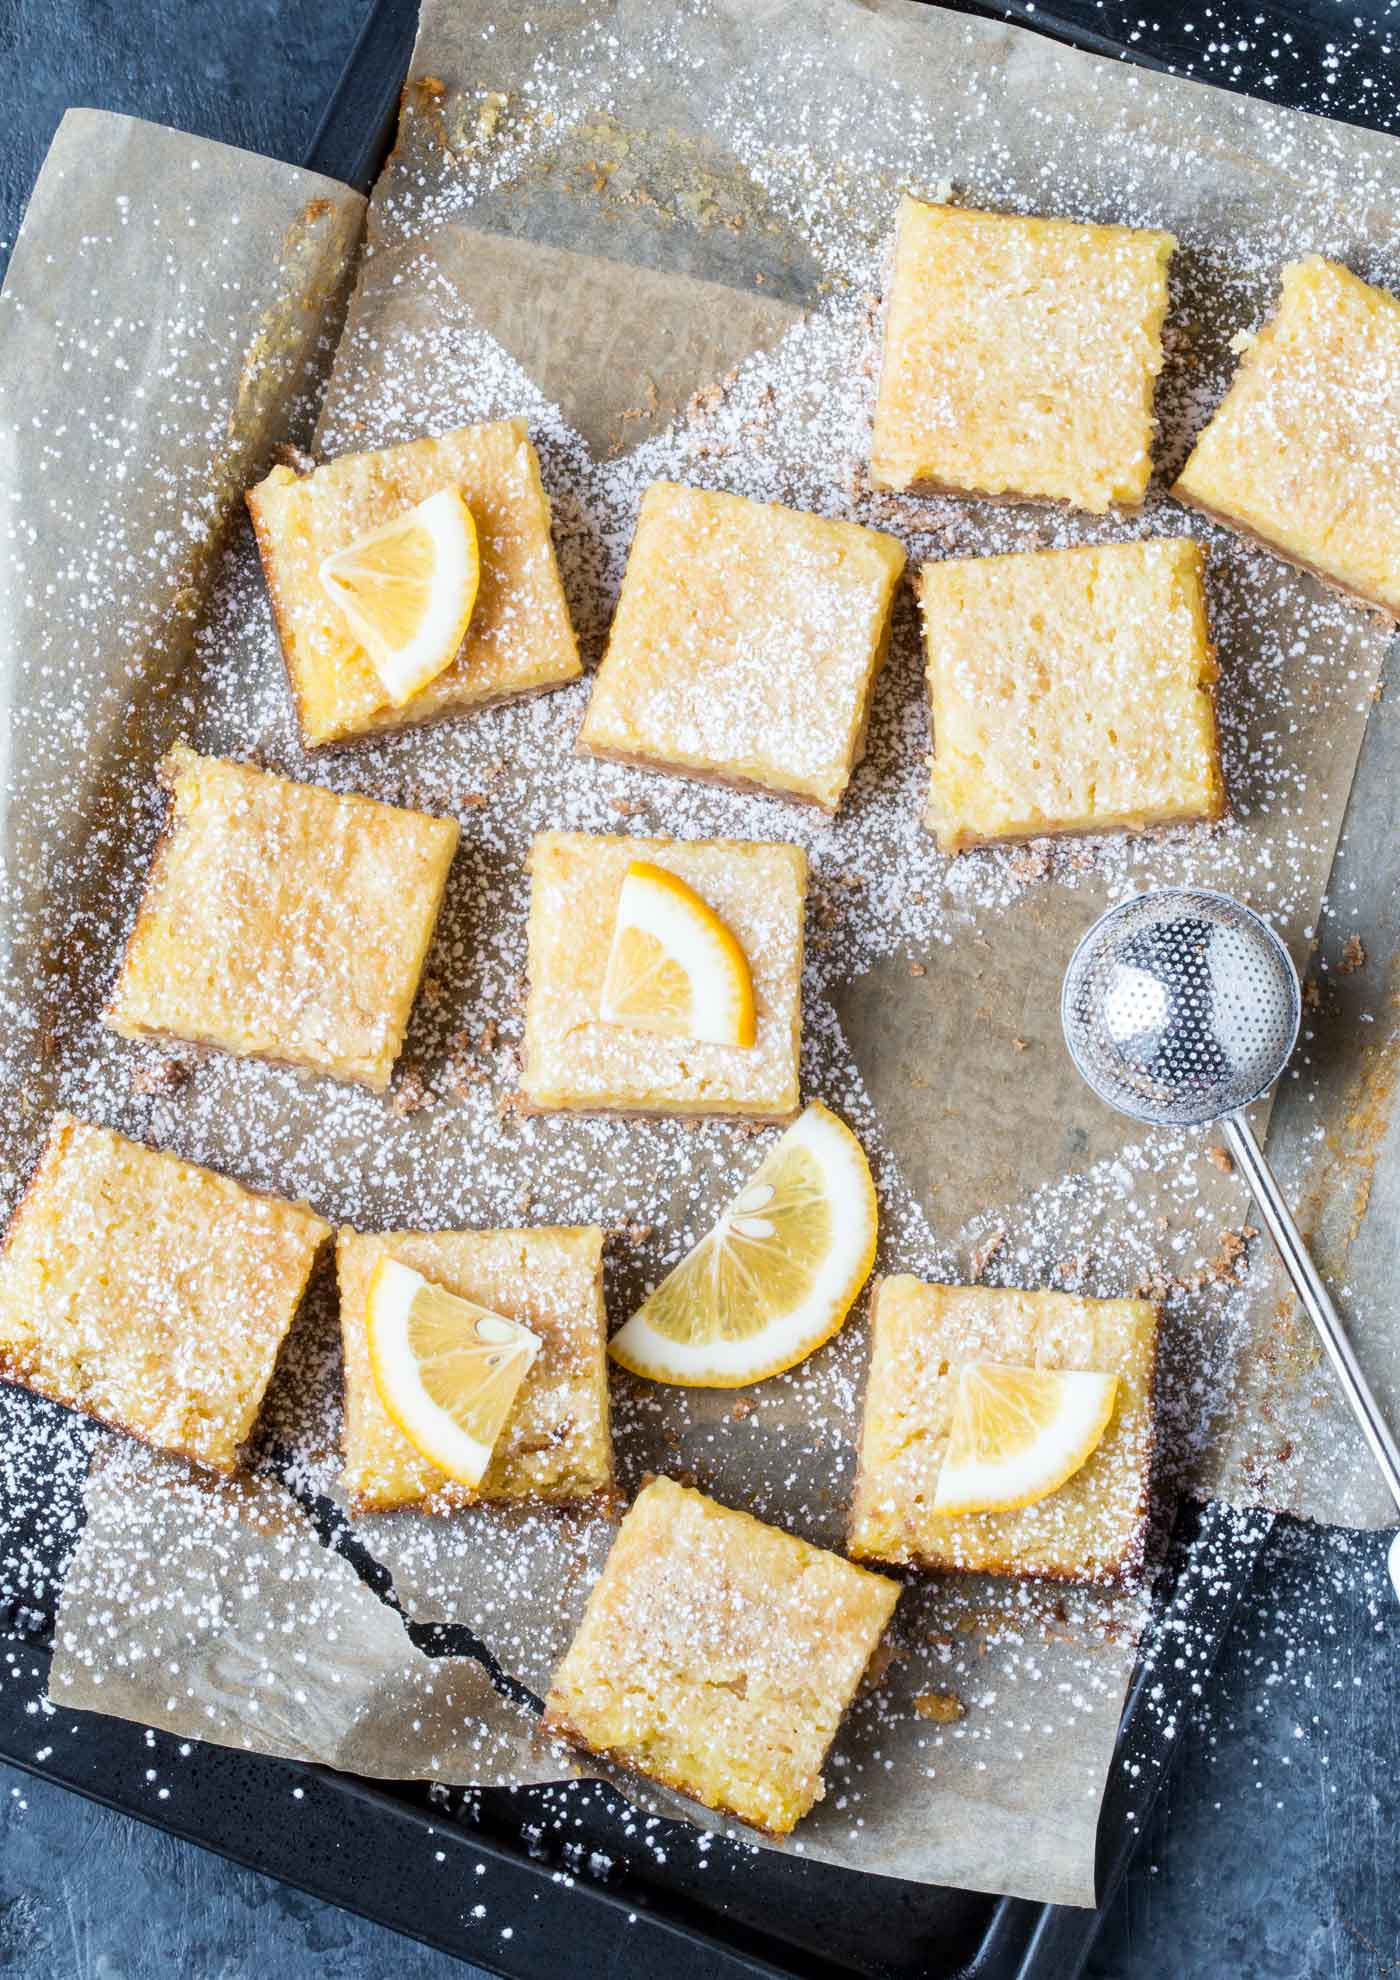 Individual coconut lemon bars sprinkled with powdered sugar layered on parchment paper and a sheet pan. Garnished with lemon slices.